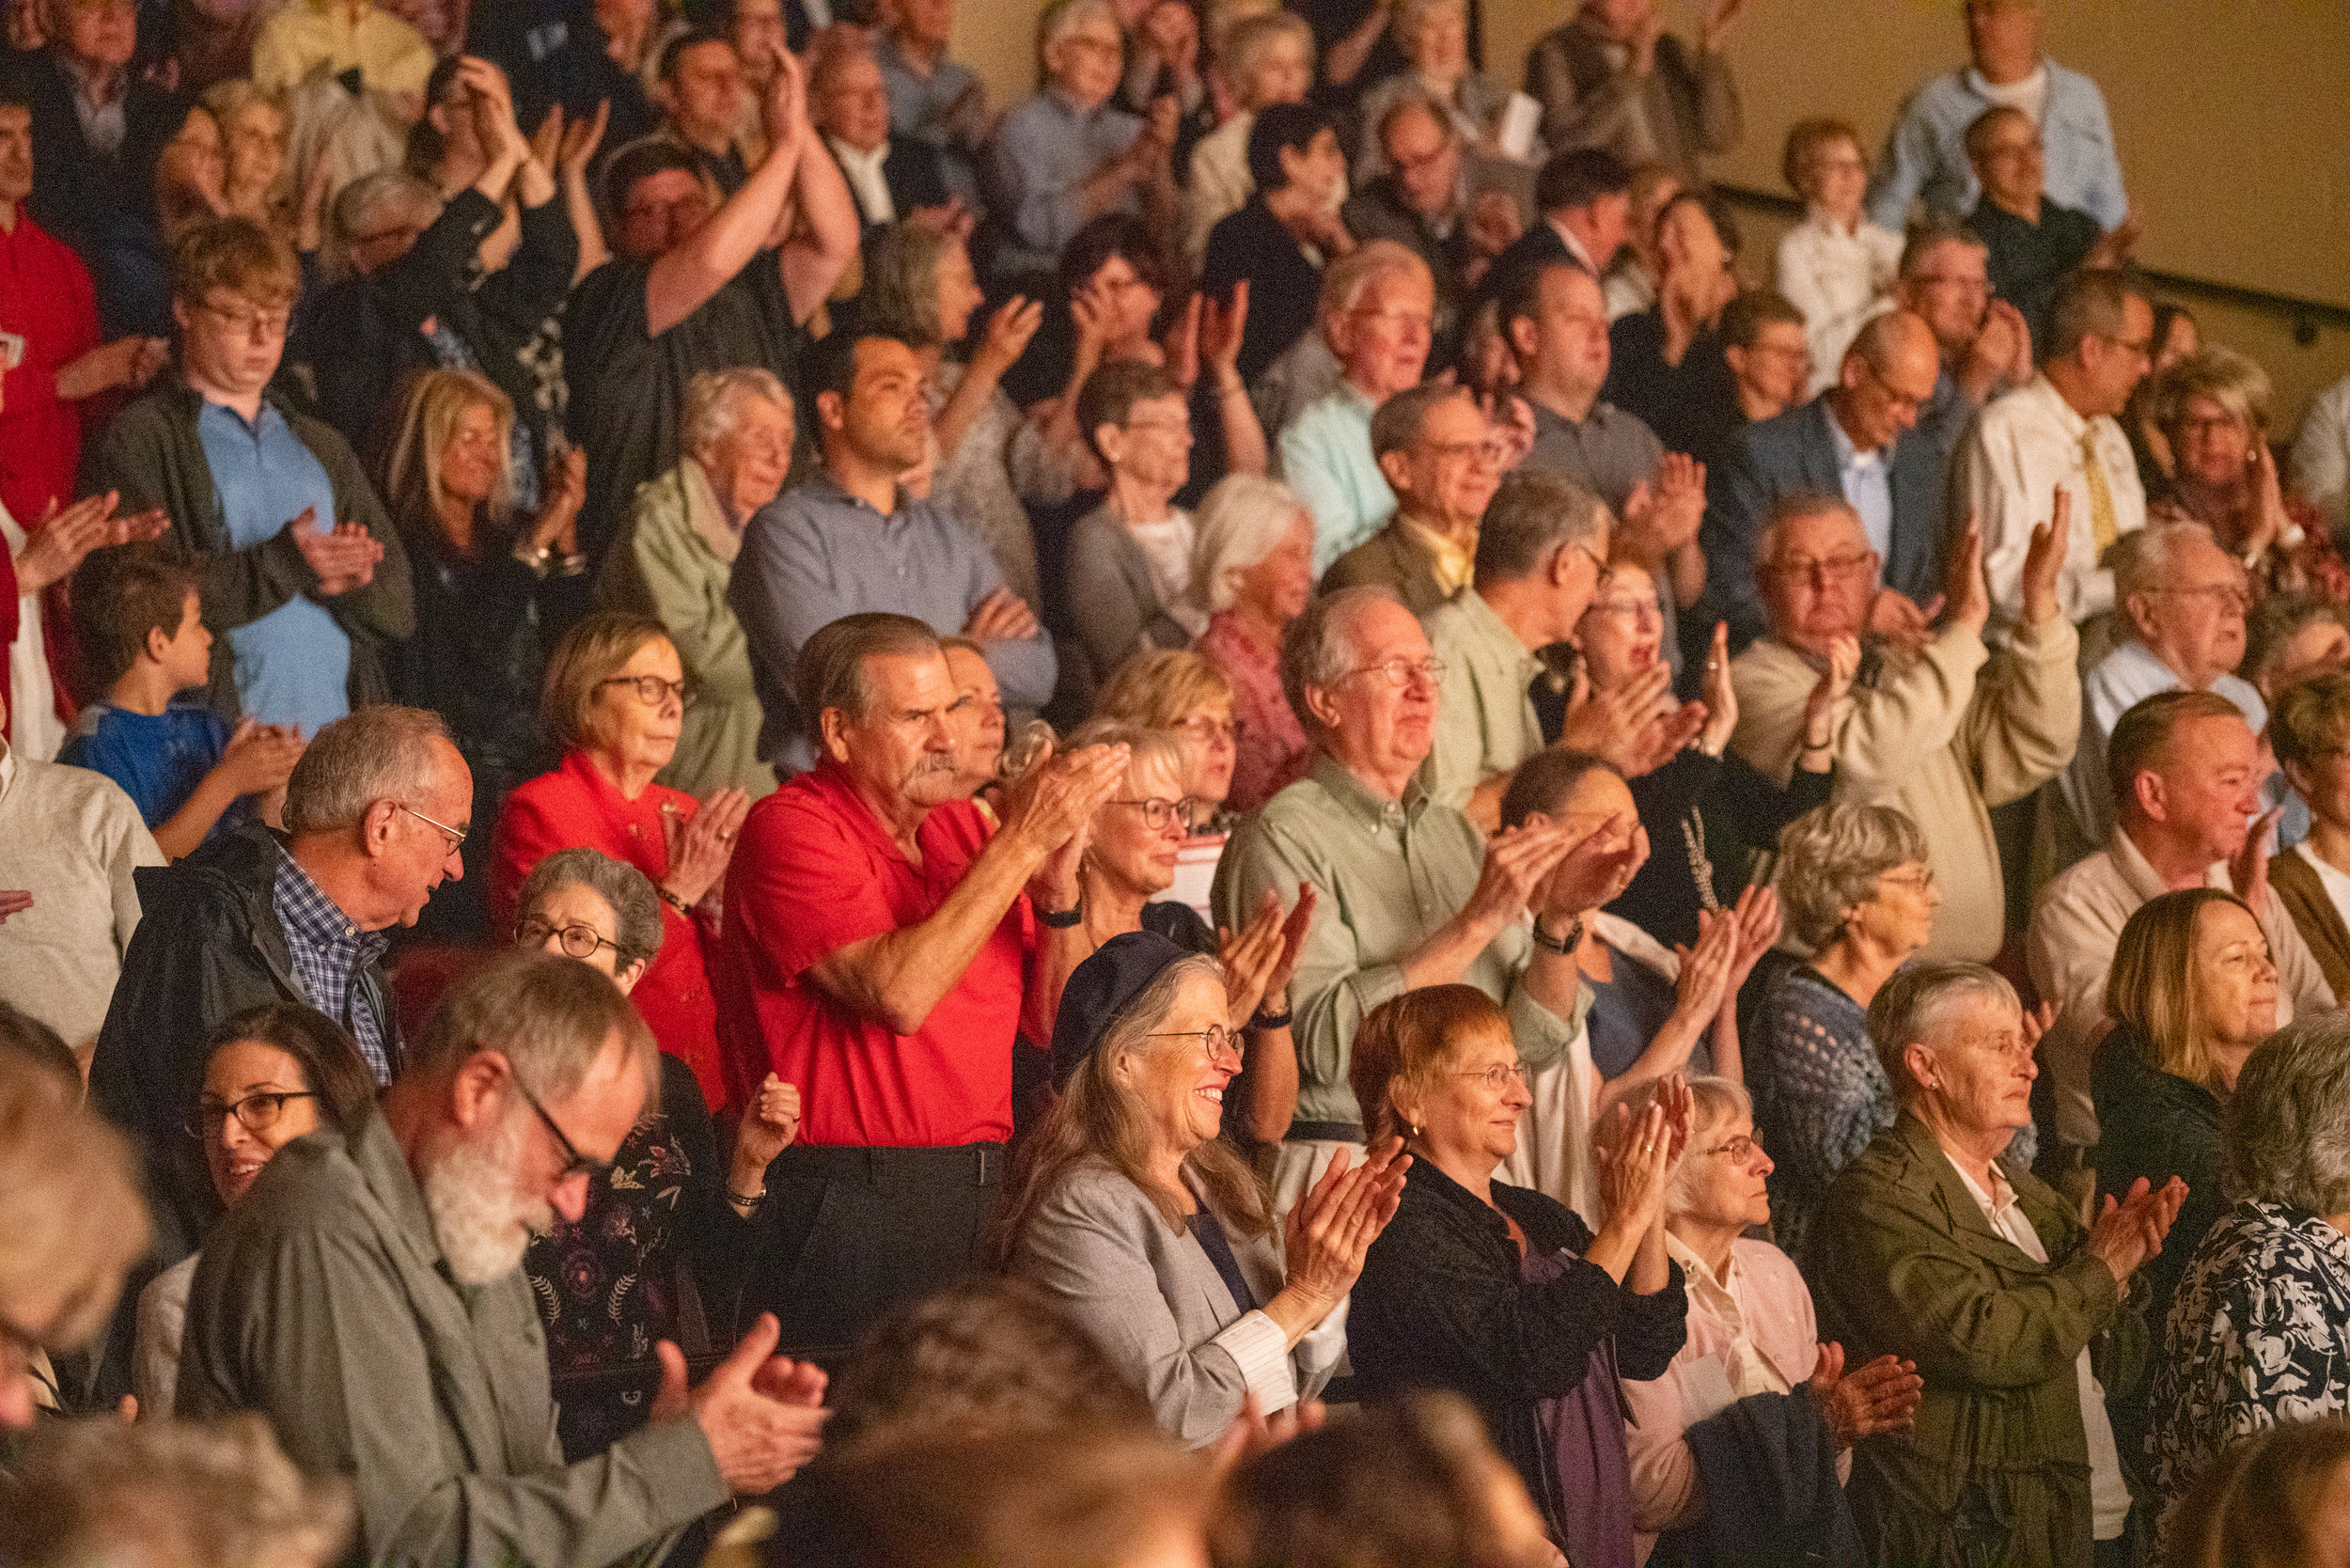 Audience members at the James Lumber Center cheer on the Lake Forest Symphony after an electrifying performance of Rachmaninov's Piano Concerto No. 3.